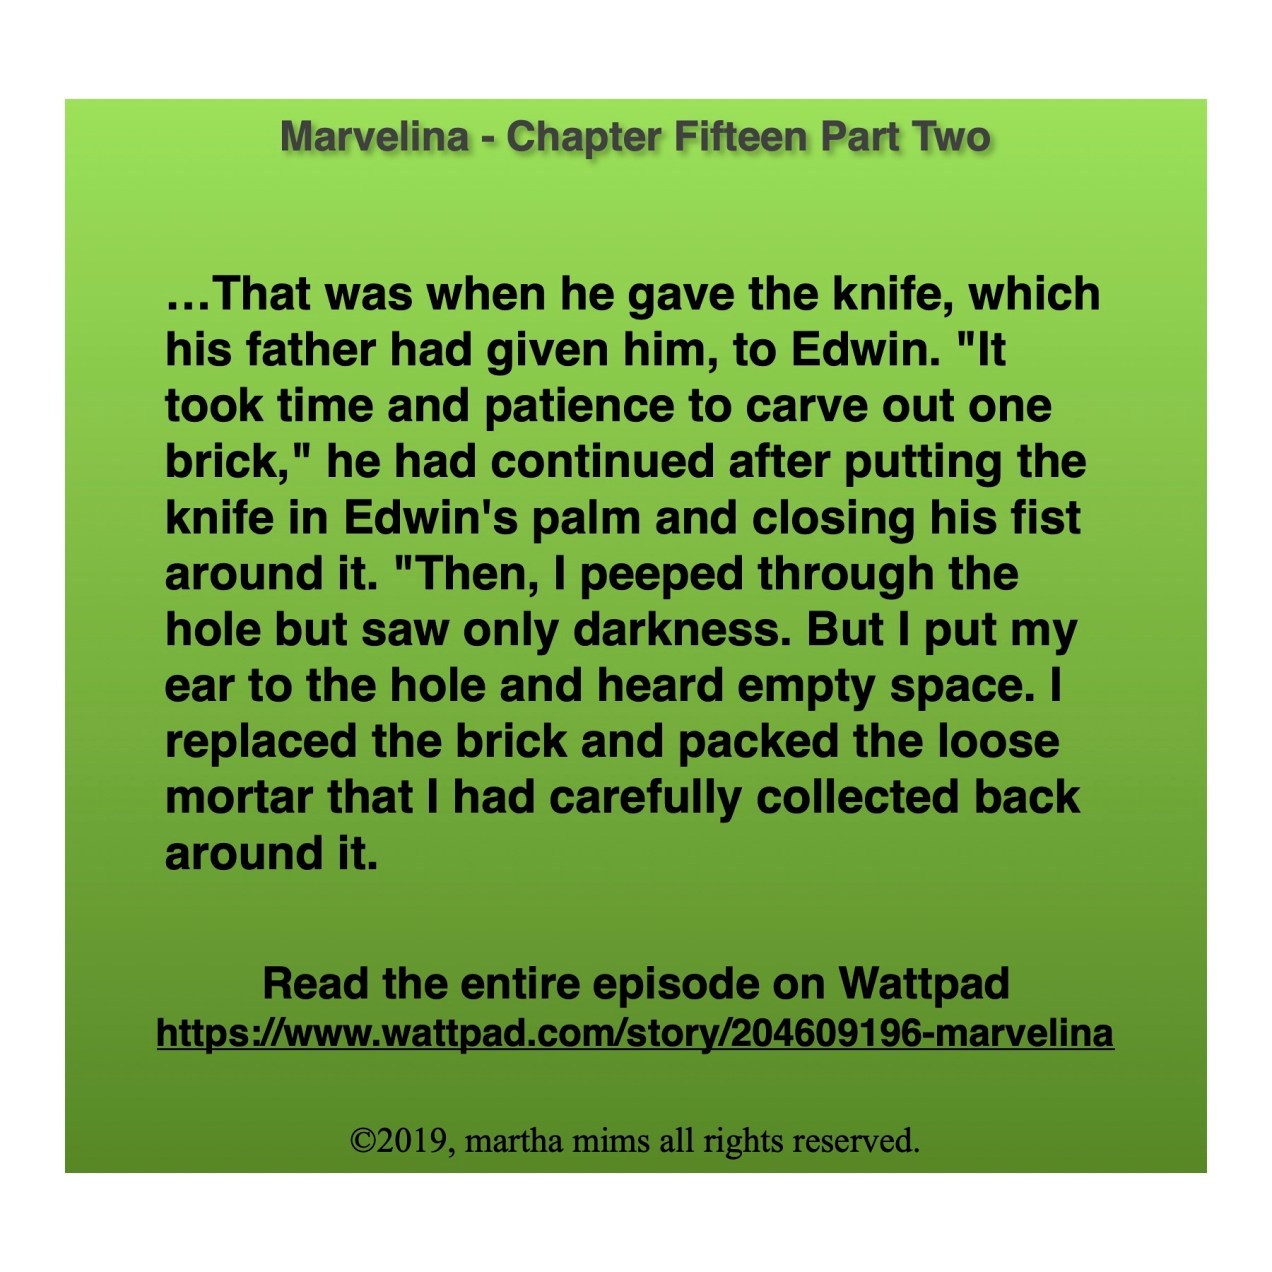 "…That was when he gave the knife, which his father had given him, to Edwin. ""It took time and patience to carve out one brick,"" he had continued after putting the knife in Edwin's palm and closing his fist around it. ""Then, I peeped through the hole but saw only darkness. But I put my ear to the hole and heard empty space. I replaced the brick and packed the loose mortar that I had carefully collected back around it."